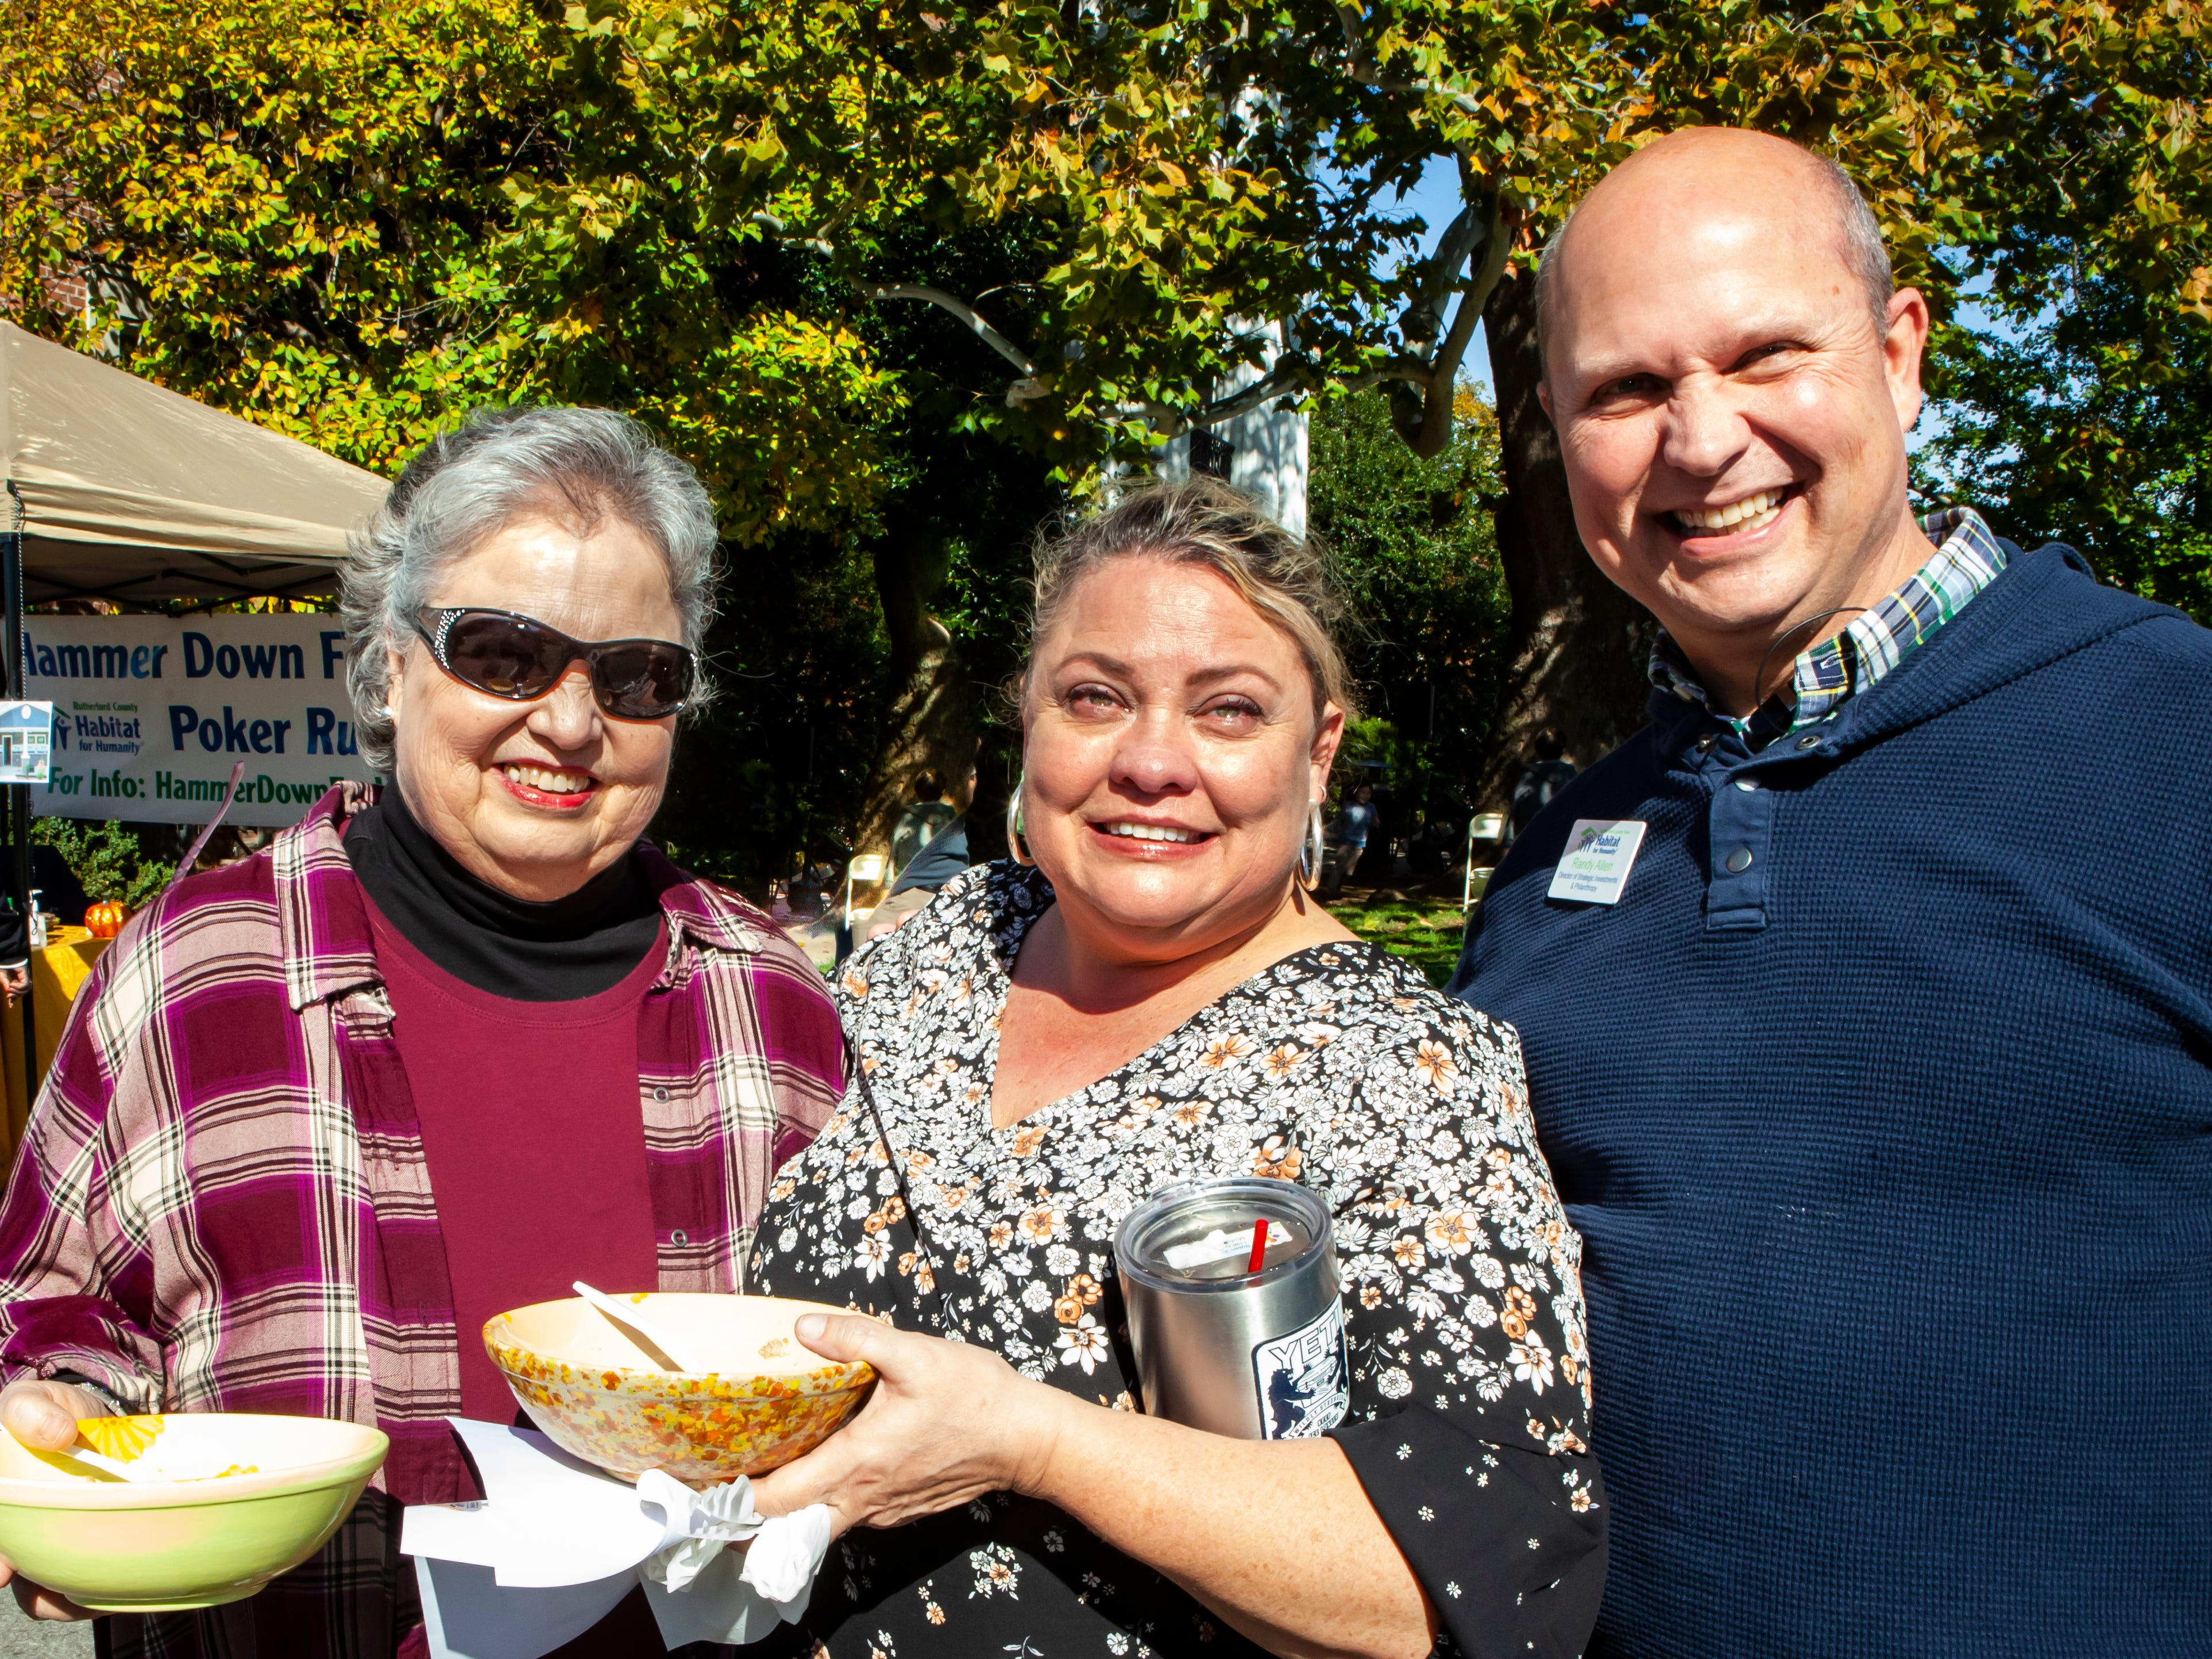 Linda Allen, Susan Jones and Randy Allen at Rutherford County Habitat for Humanity's 2018 Cookin' to Build fundraiser on Saturday, Nov. 3, 2018.